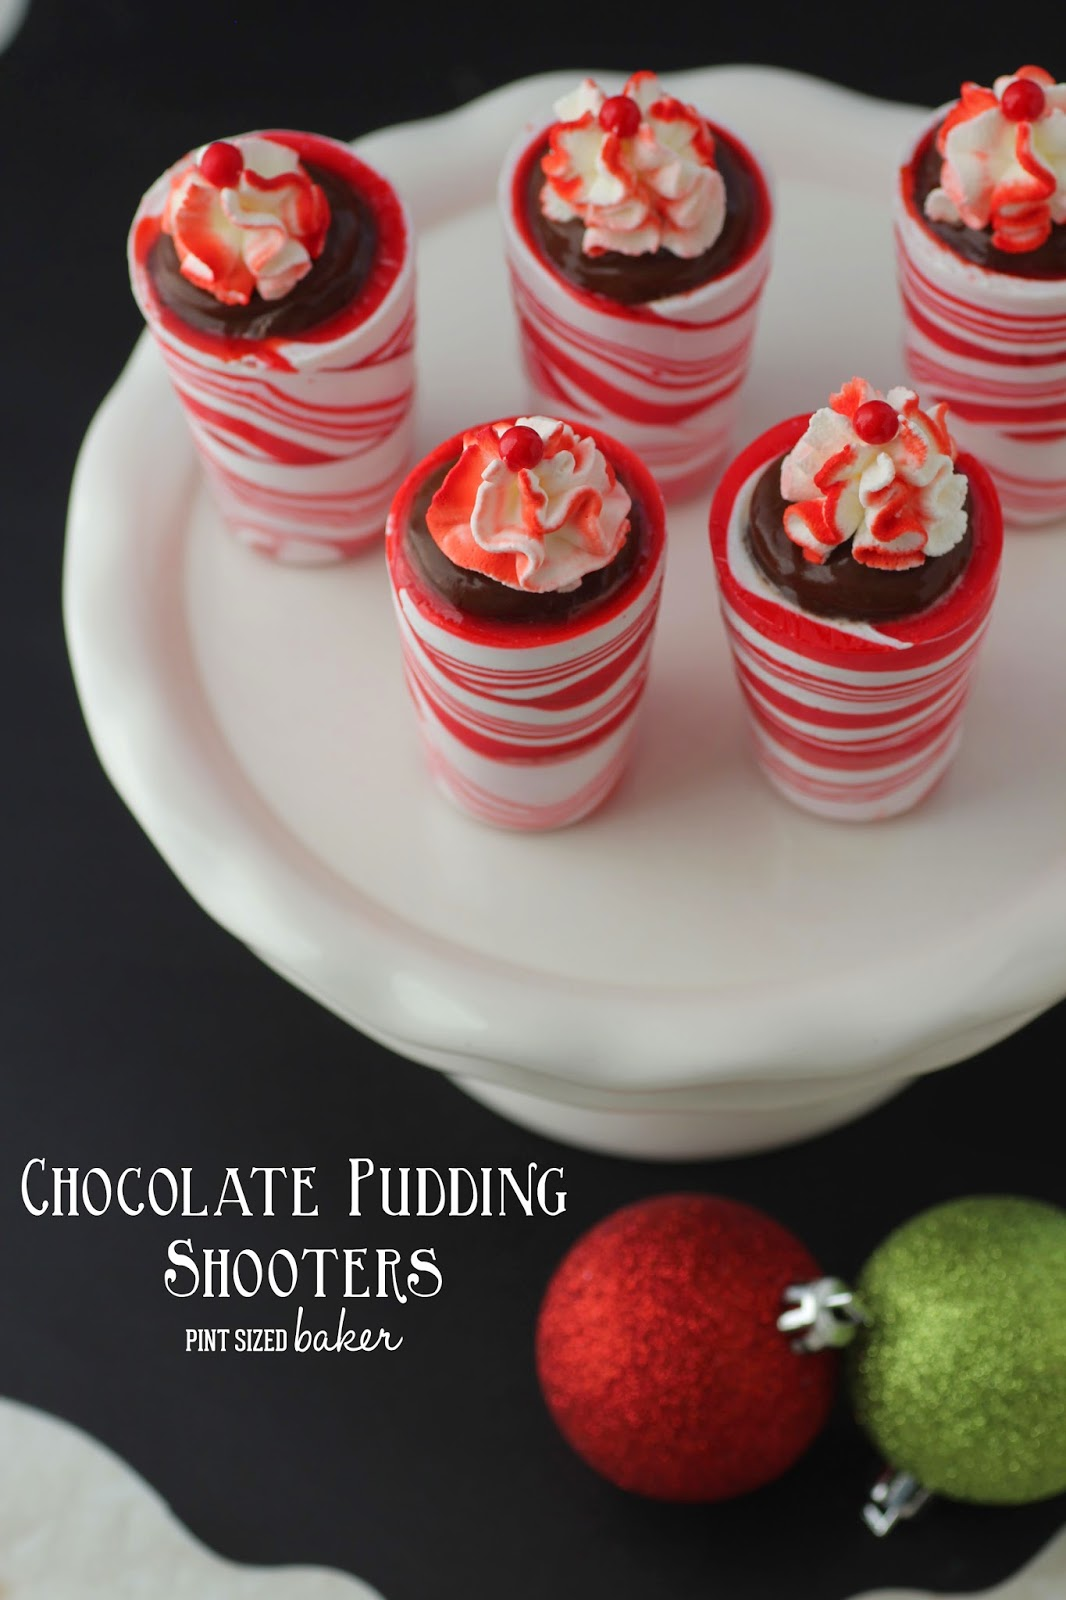 Chocolate Pudding Shooters - Pint Sized Baker